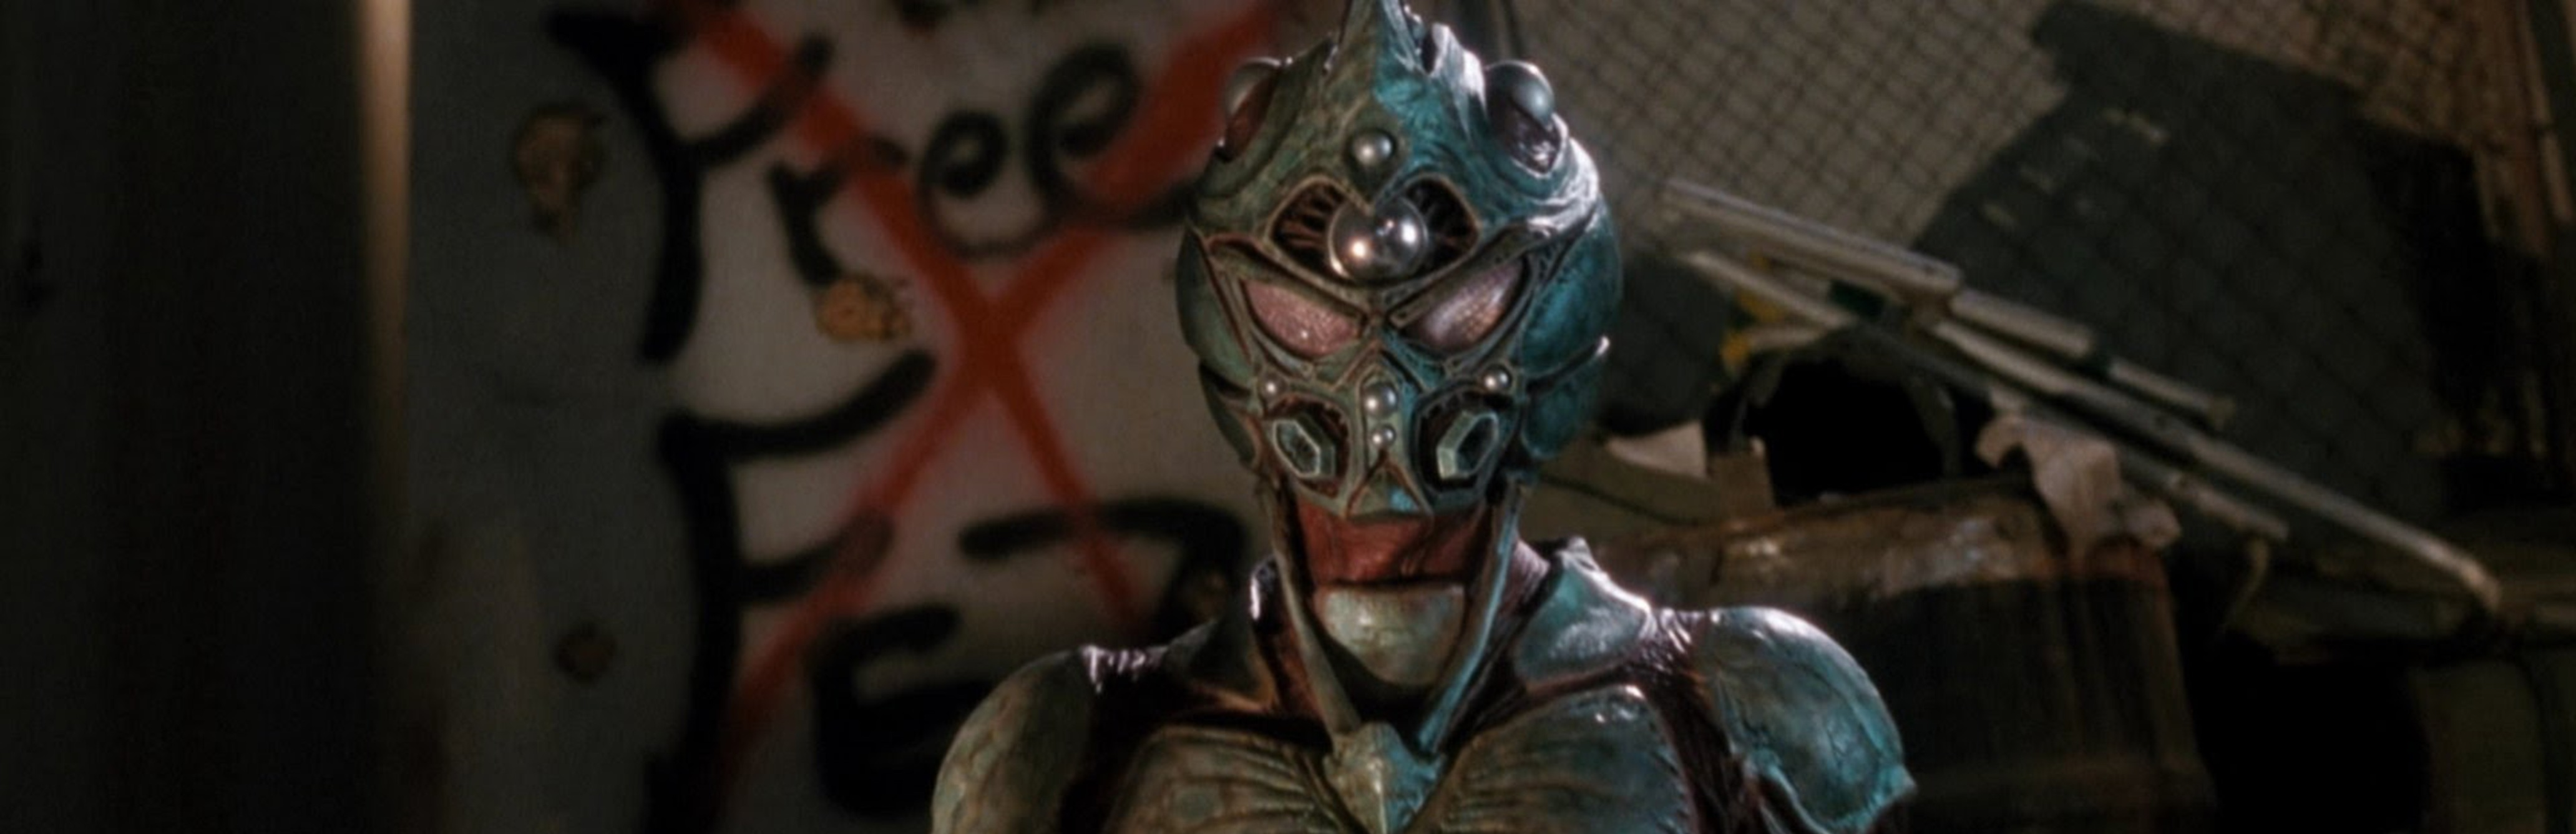 Blu-ray Review - The Guyver (1991)